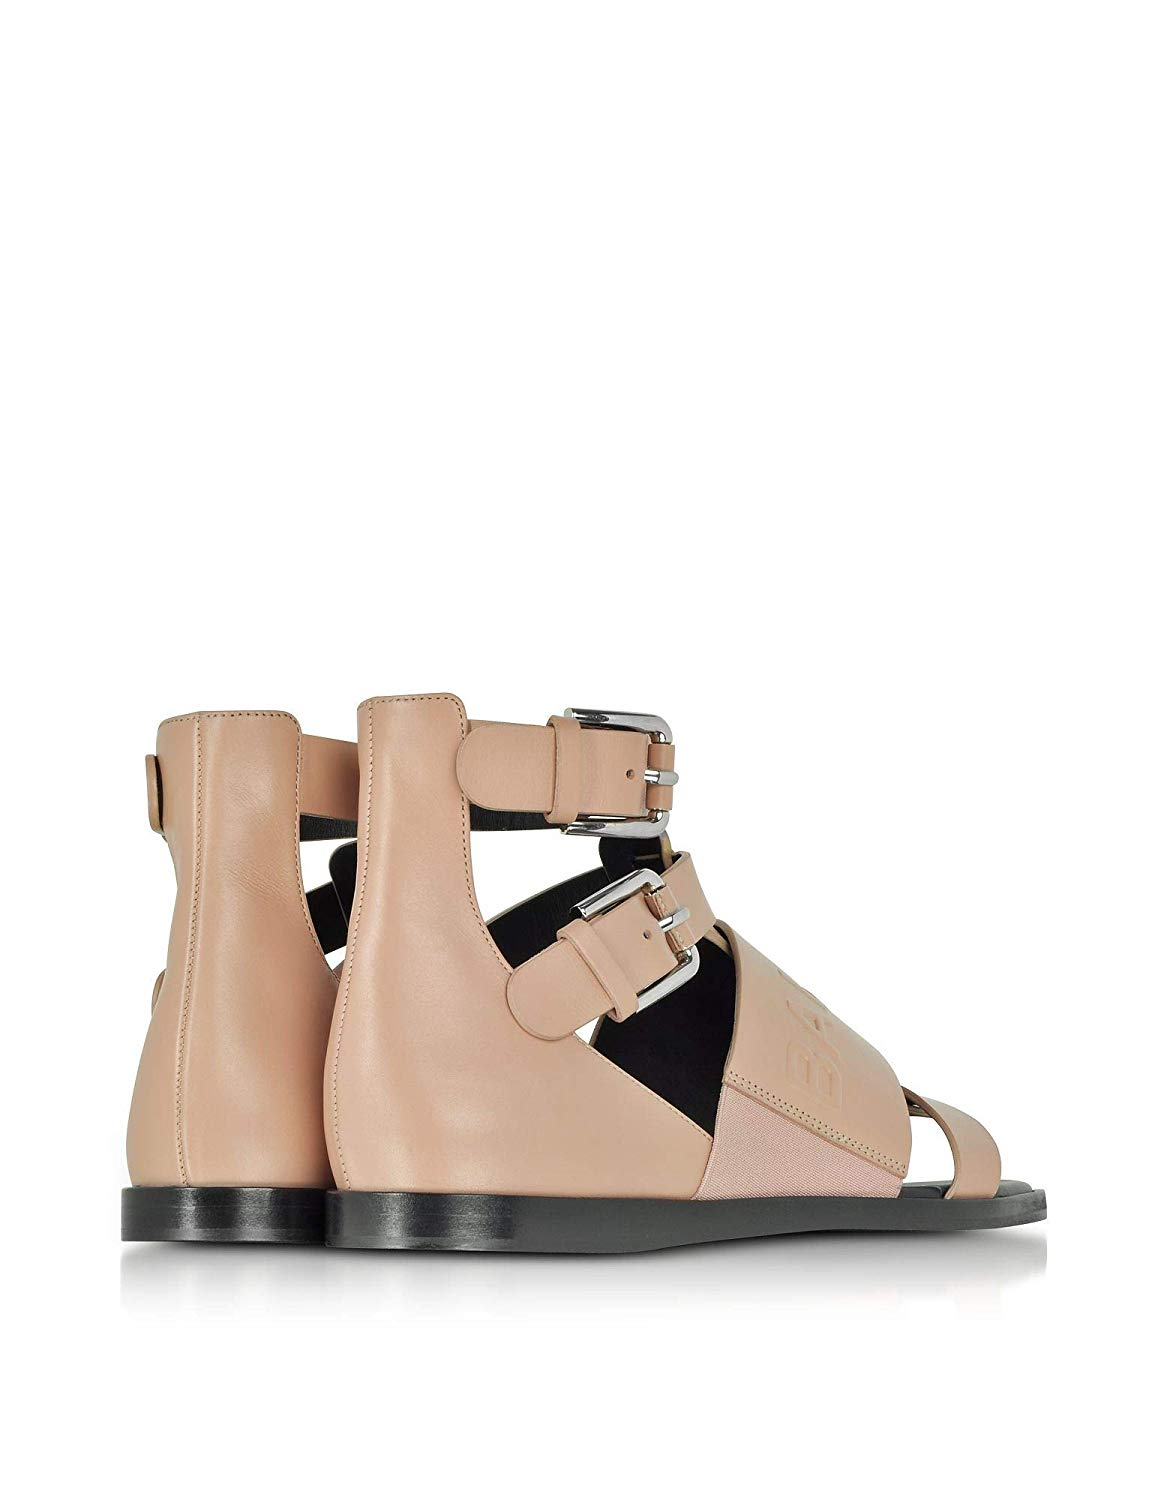 Balmain S8FC156PGDB1021 Pink Leather Sandals 03